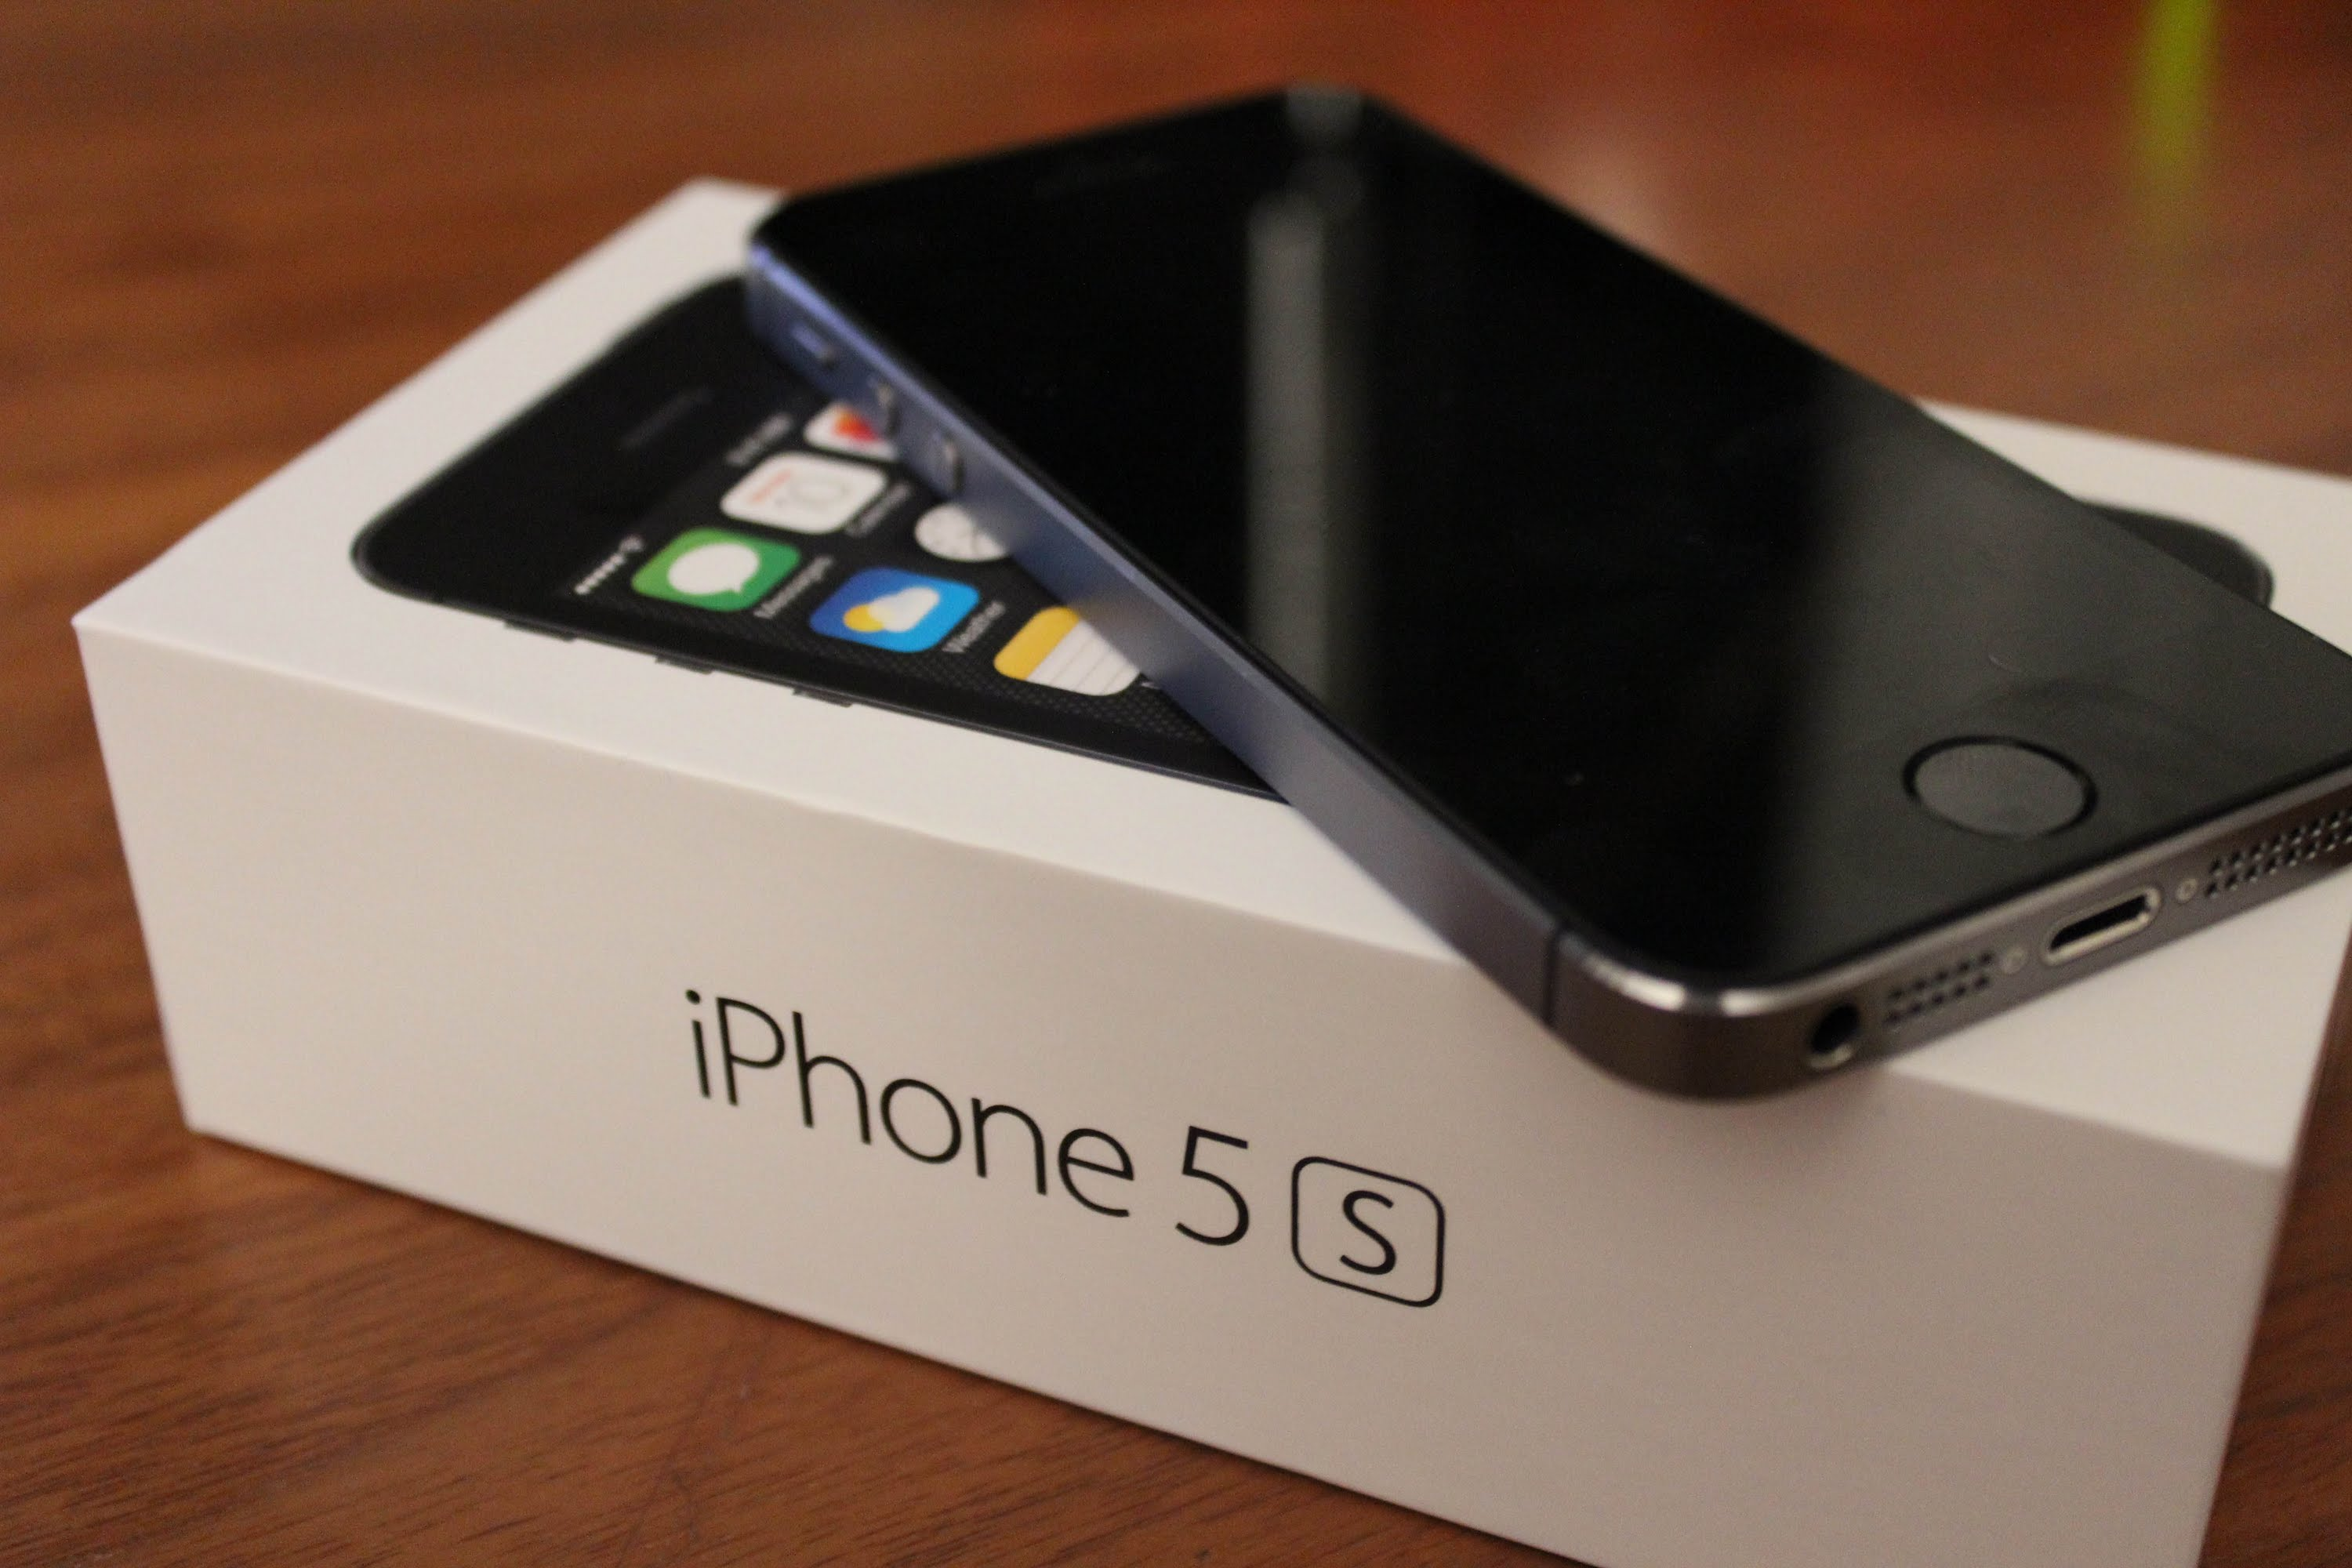 Apple iPhone 5s Gadget Review - File Edge